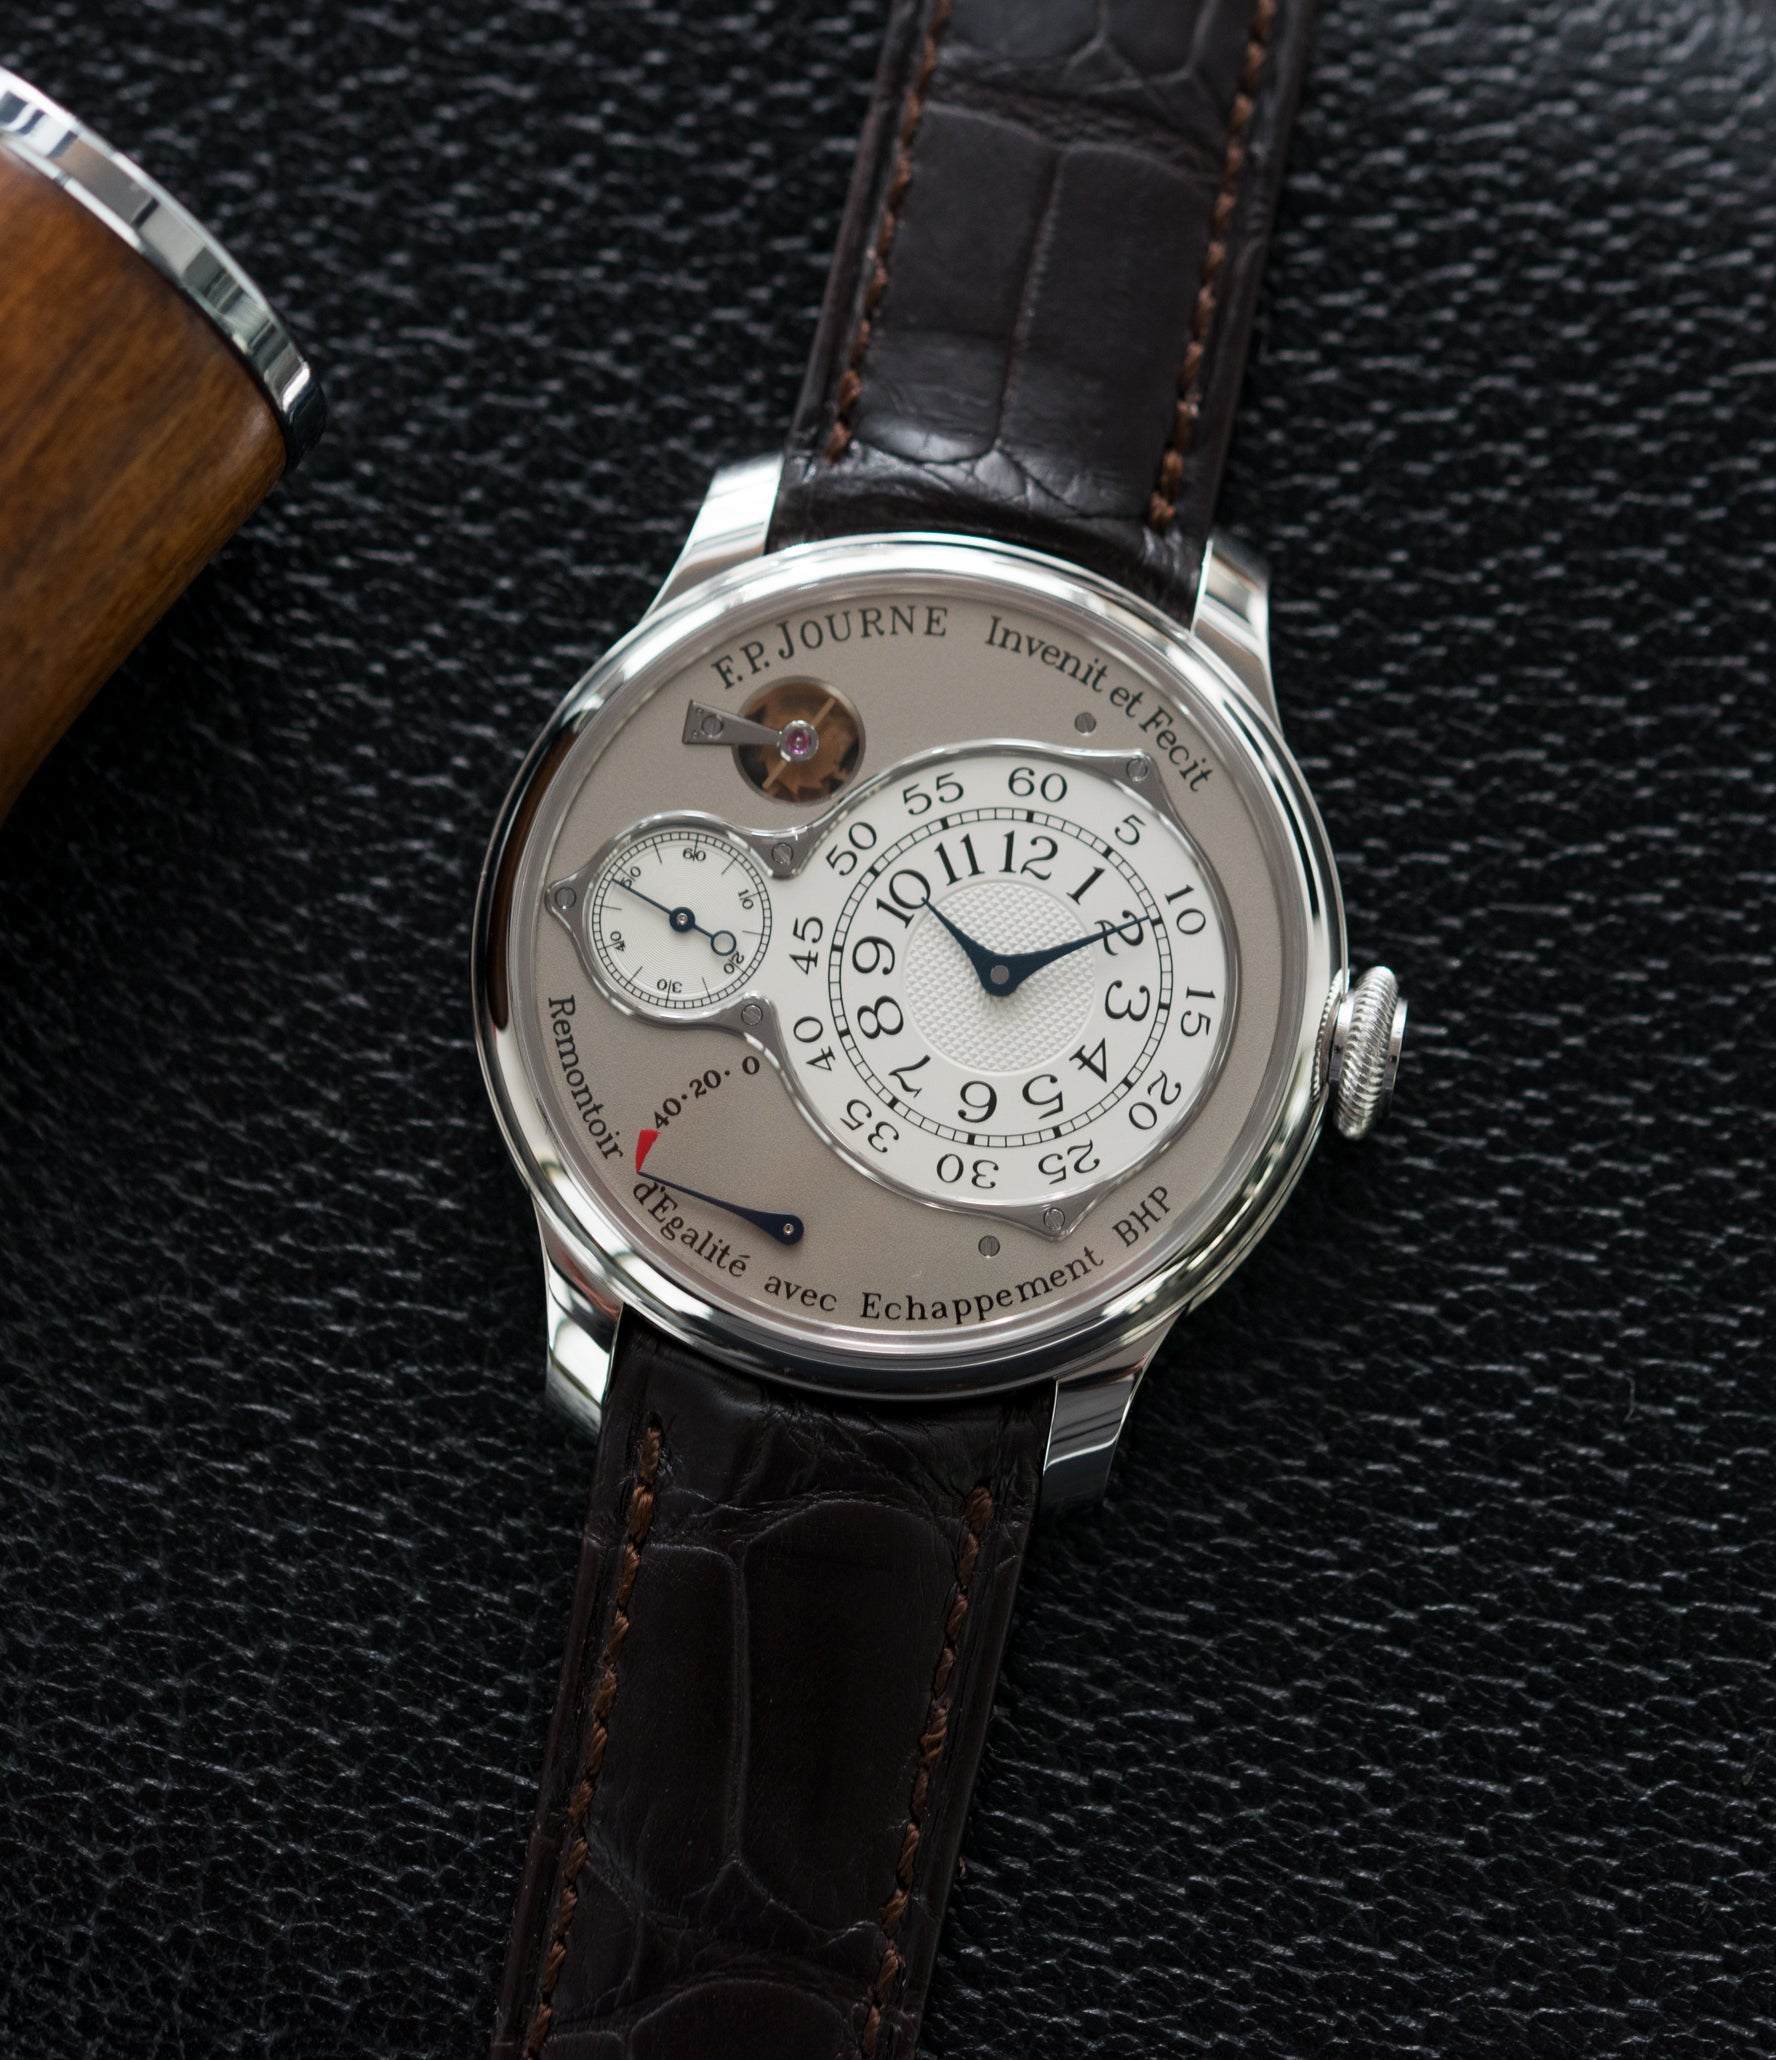 for sale F. P. Journe Chronometre Optimum platinum rare watch for sale online at A Collected Man London approved retailer of independent watchmakers